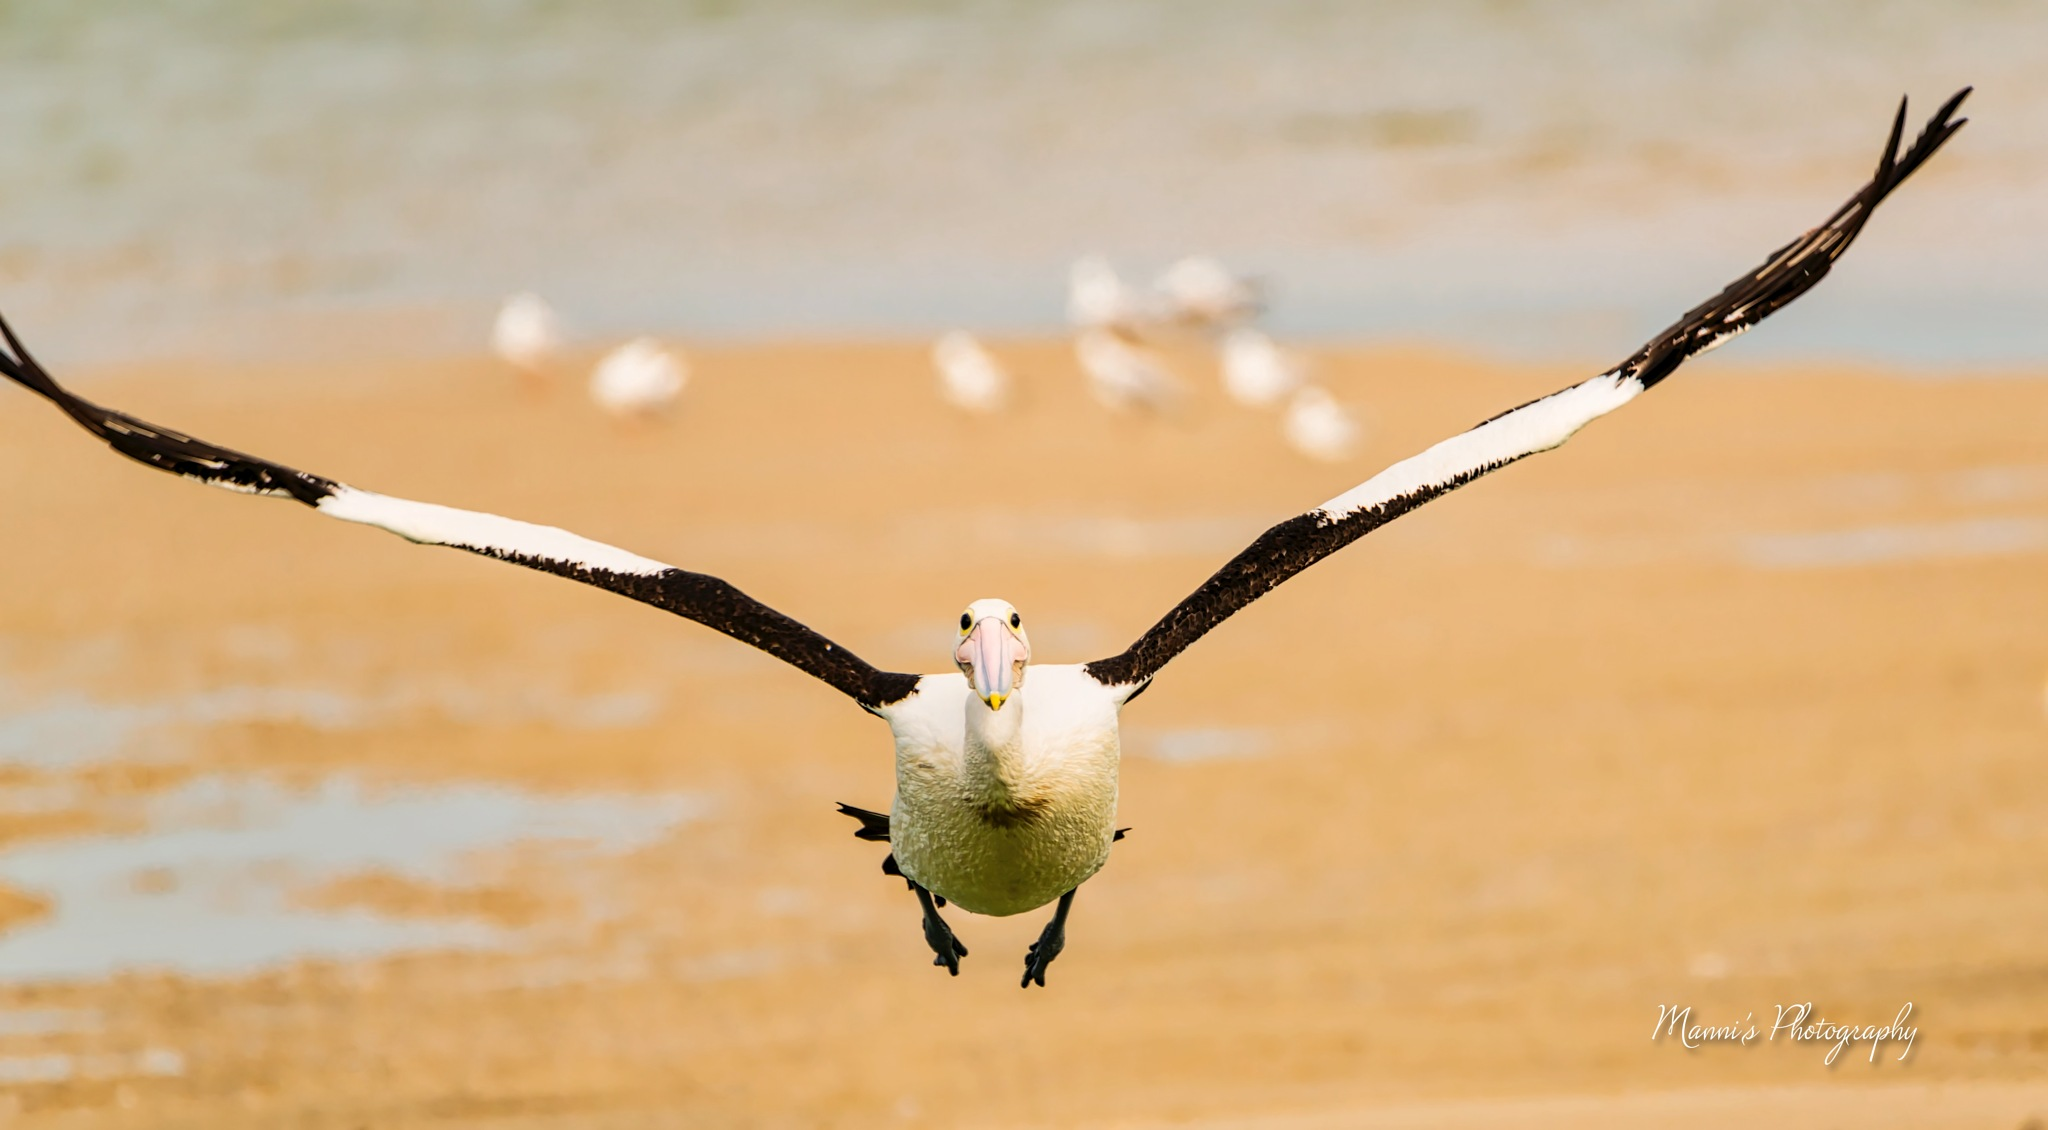 Flying by Manni